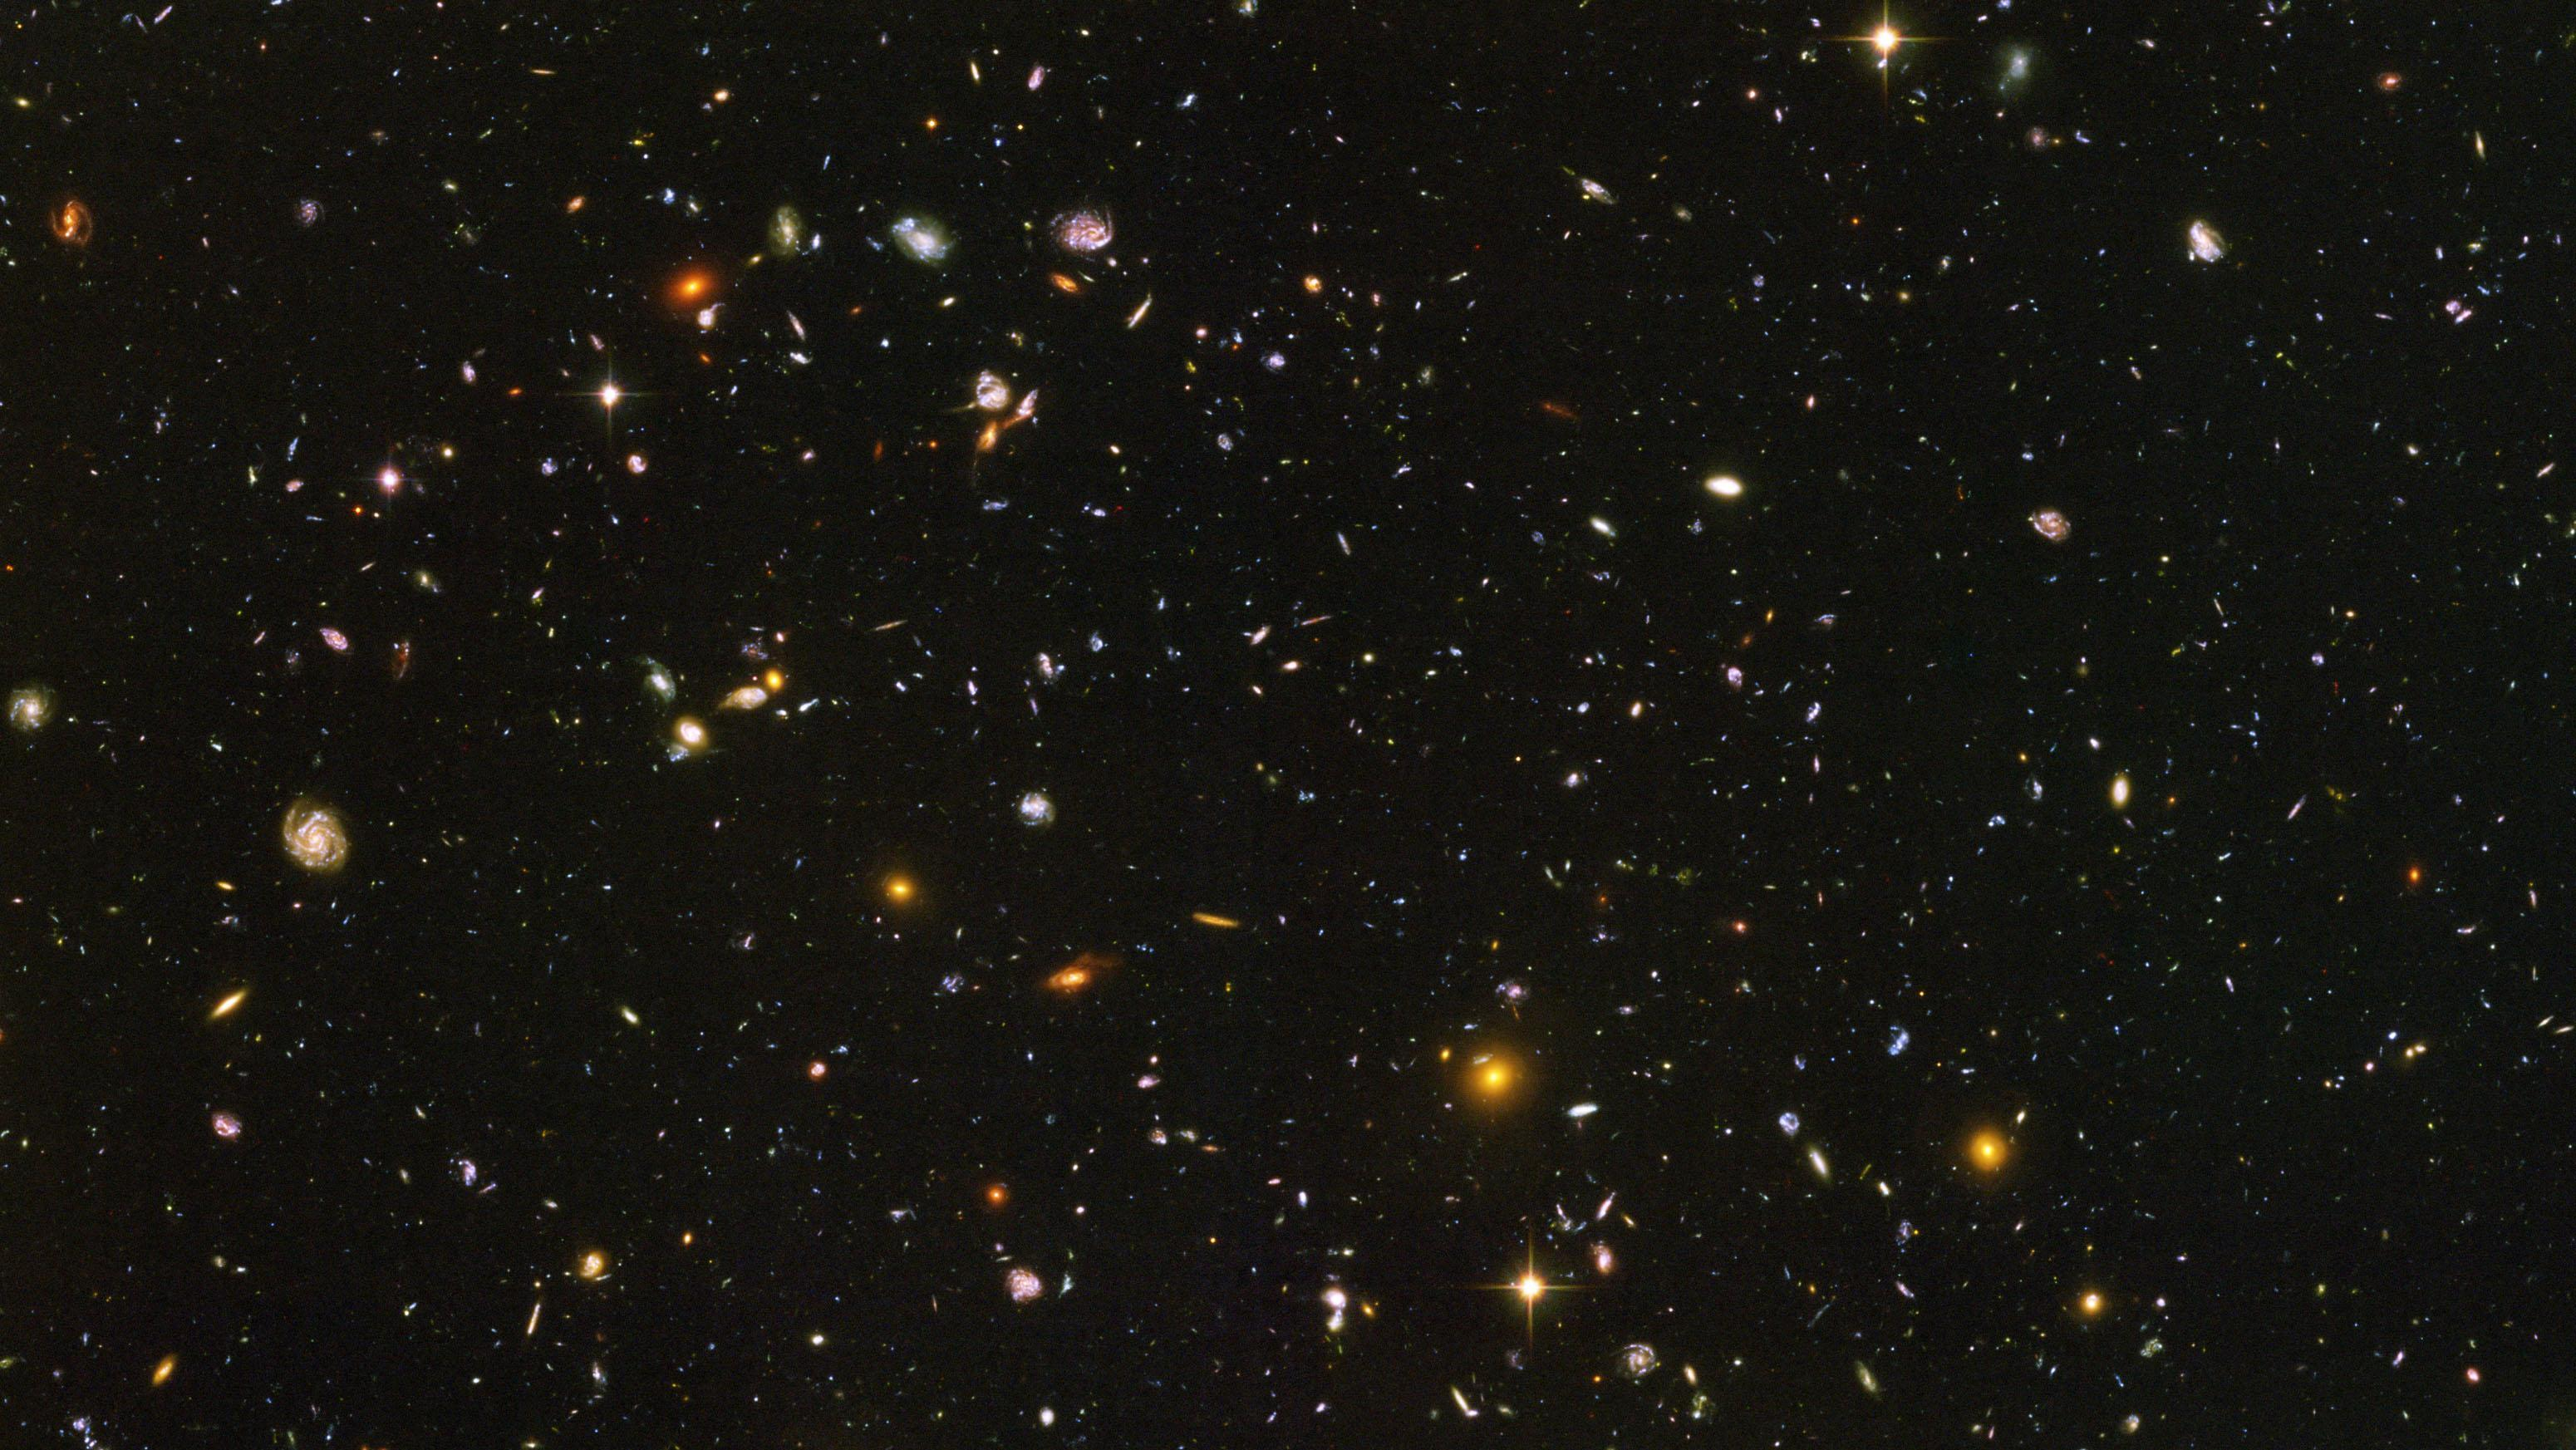 dark space images hubble - photo #24